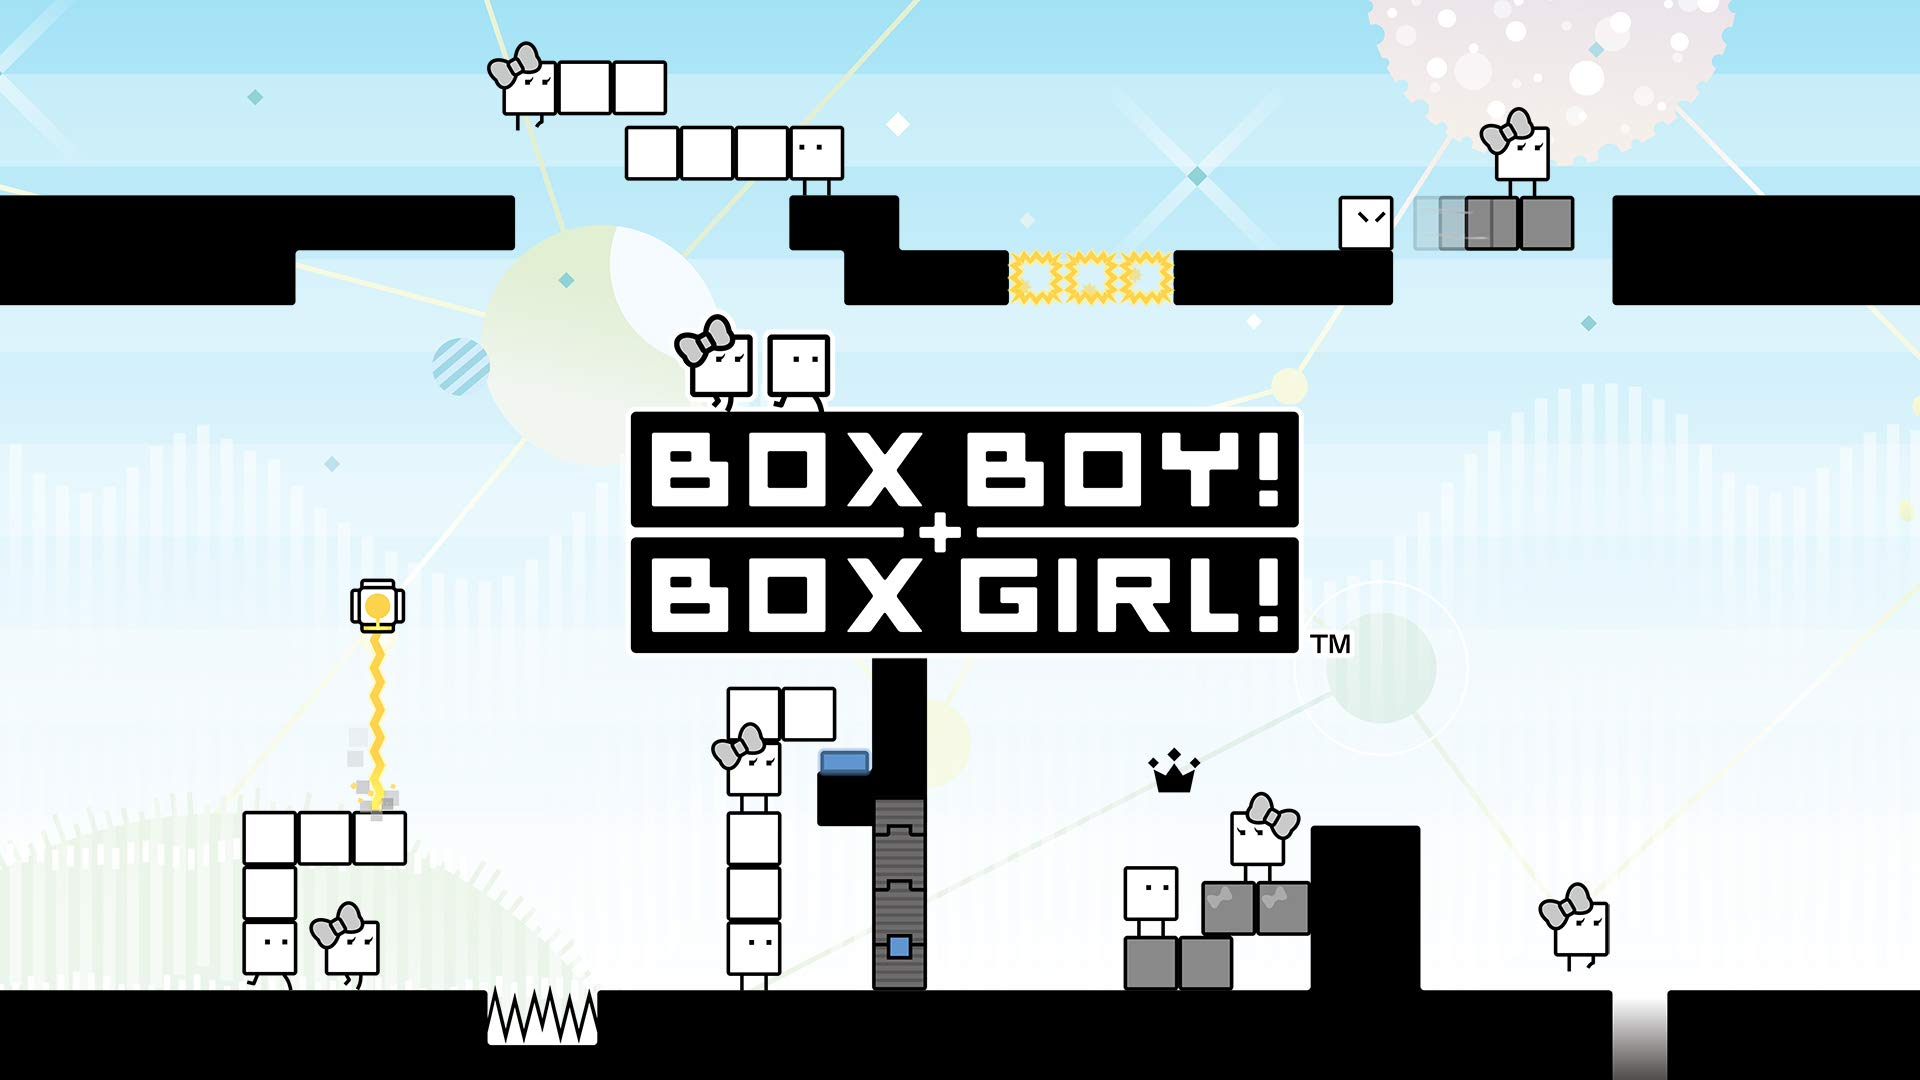 19 Boxboy Boxgirl Wallpapers On Wallpapersafari